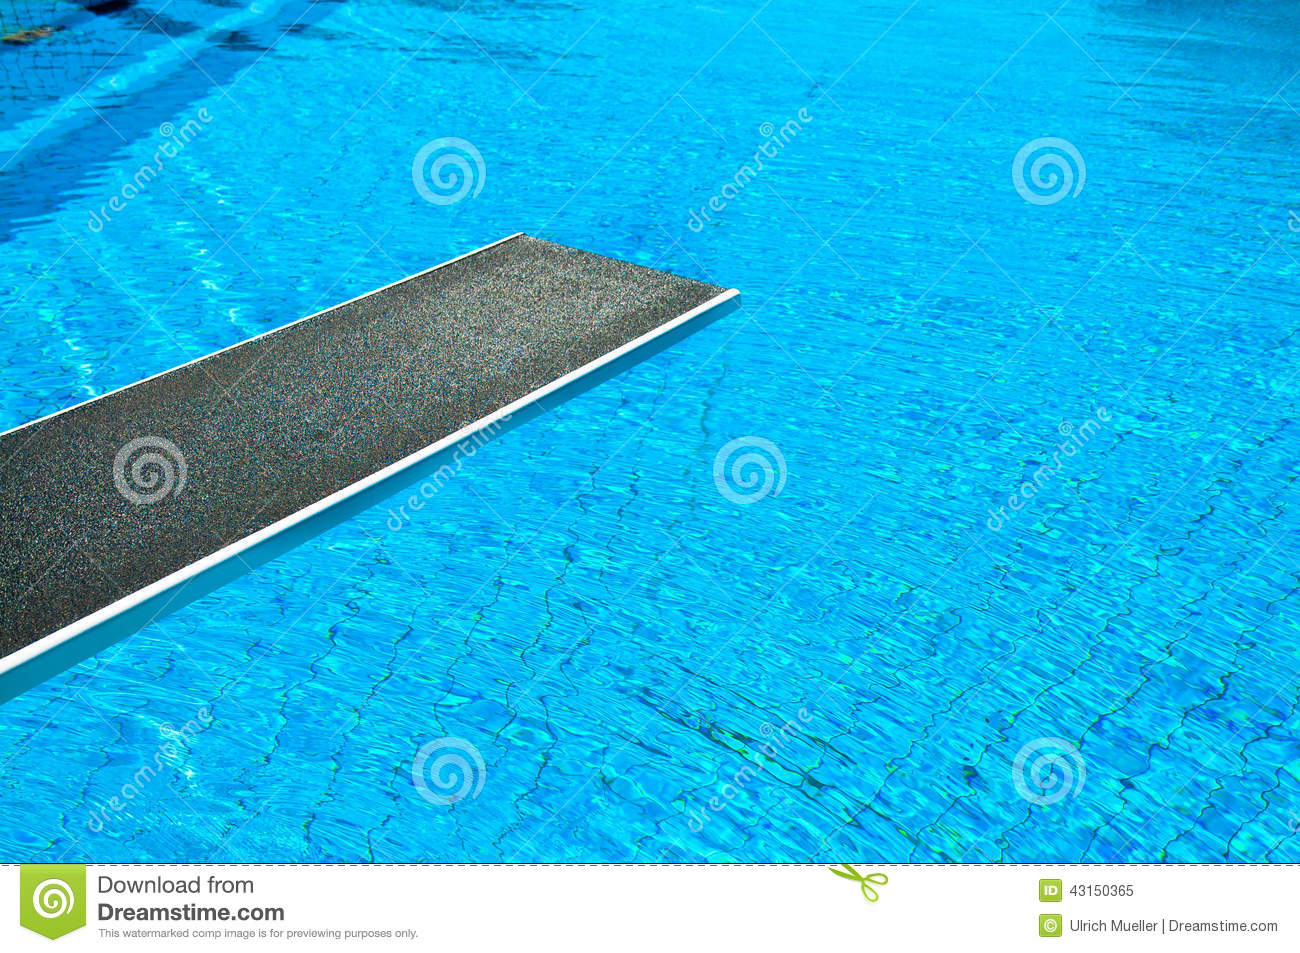 Jumping board stock image. Image of blue, pool, summer - 43150365